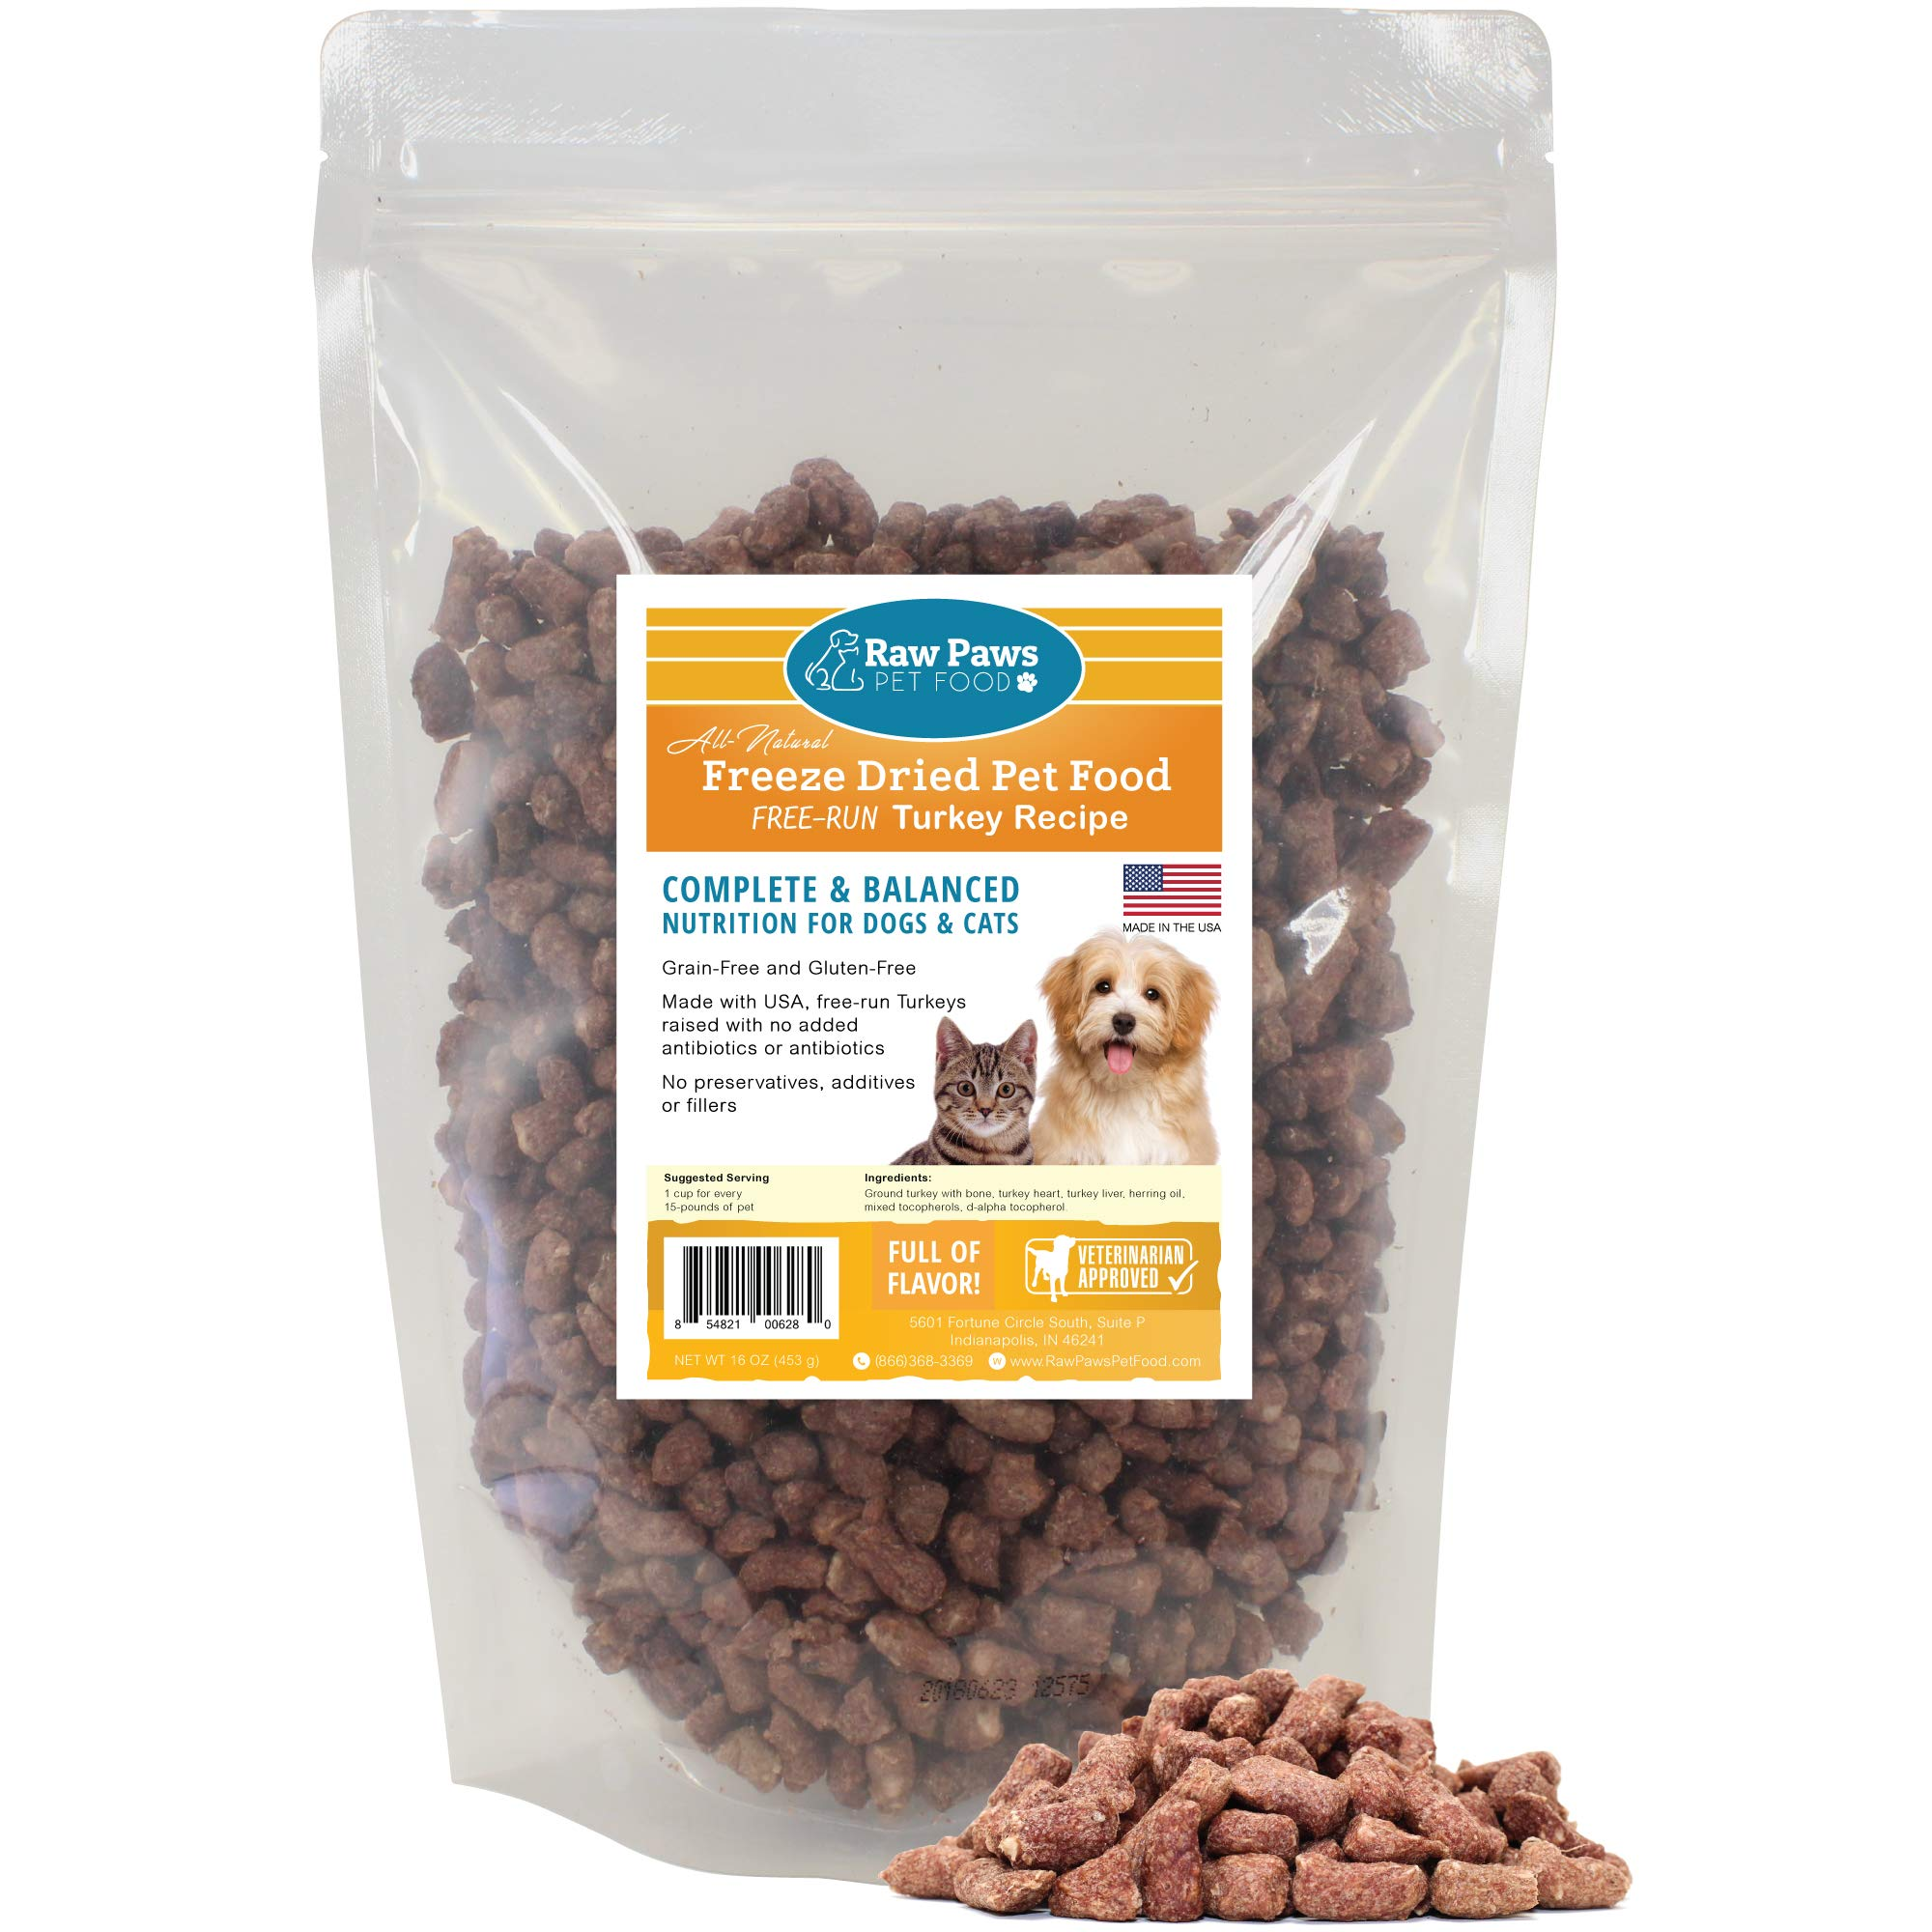 Raw Paws Pet Premium Raw Freeze Dried Turkey Dog Food & Cat Food, 16 Ounce - Antibiotic-Free Turkey - Made in USA Only - Grain, Gluten and Wheat Free Pet Food by Raw Paws